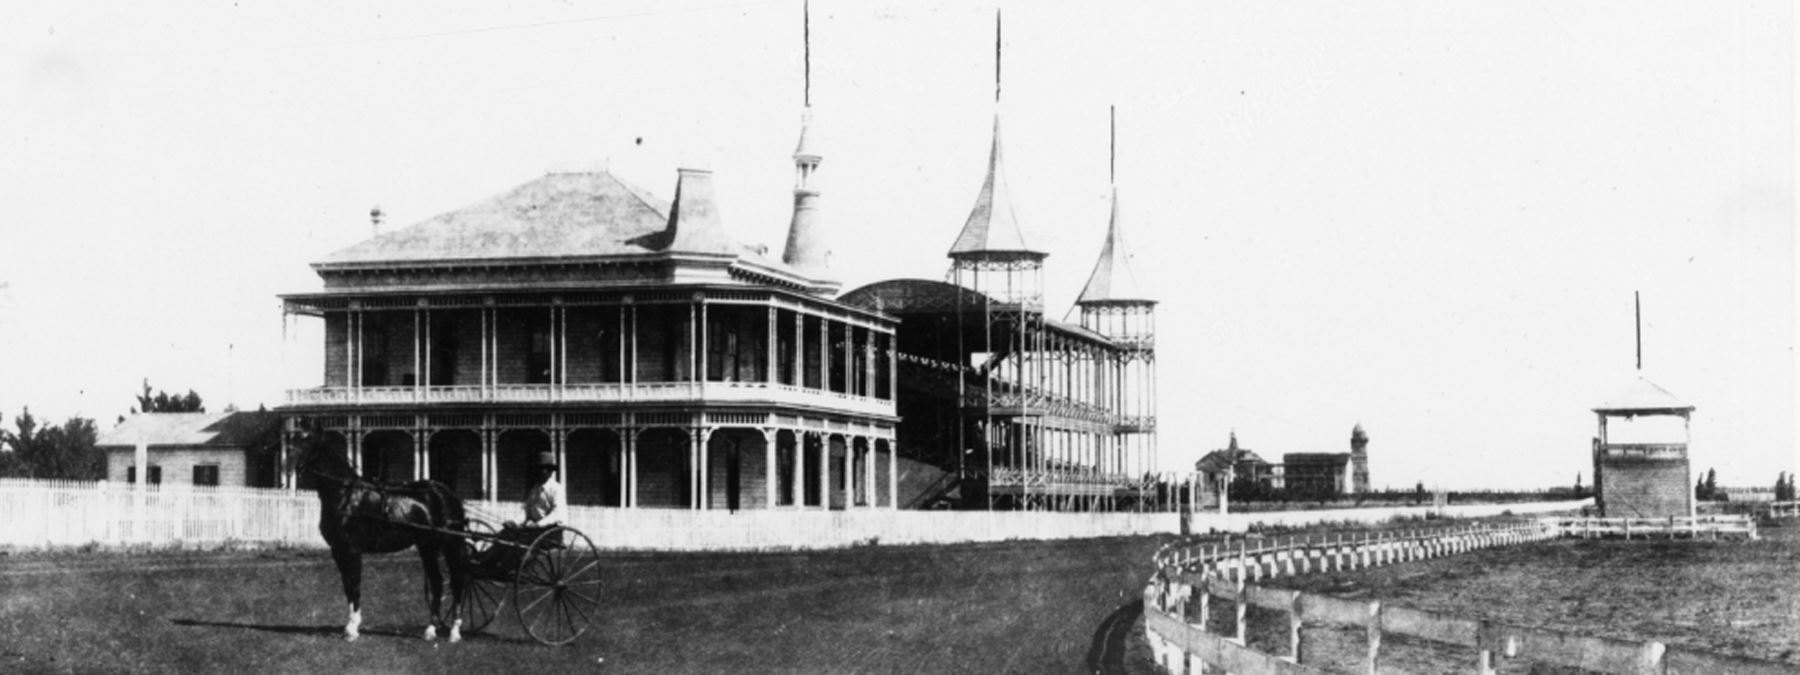 History of the Grandstand